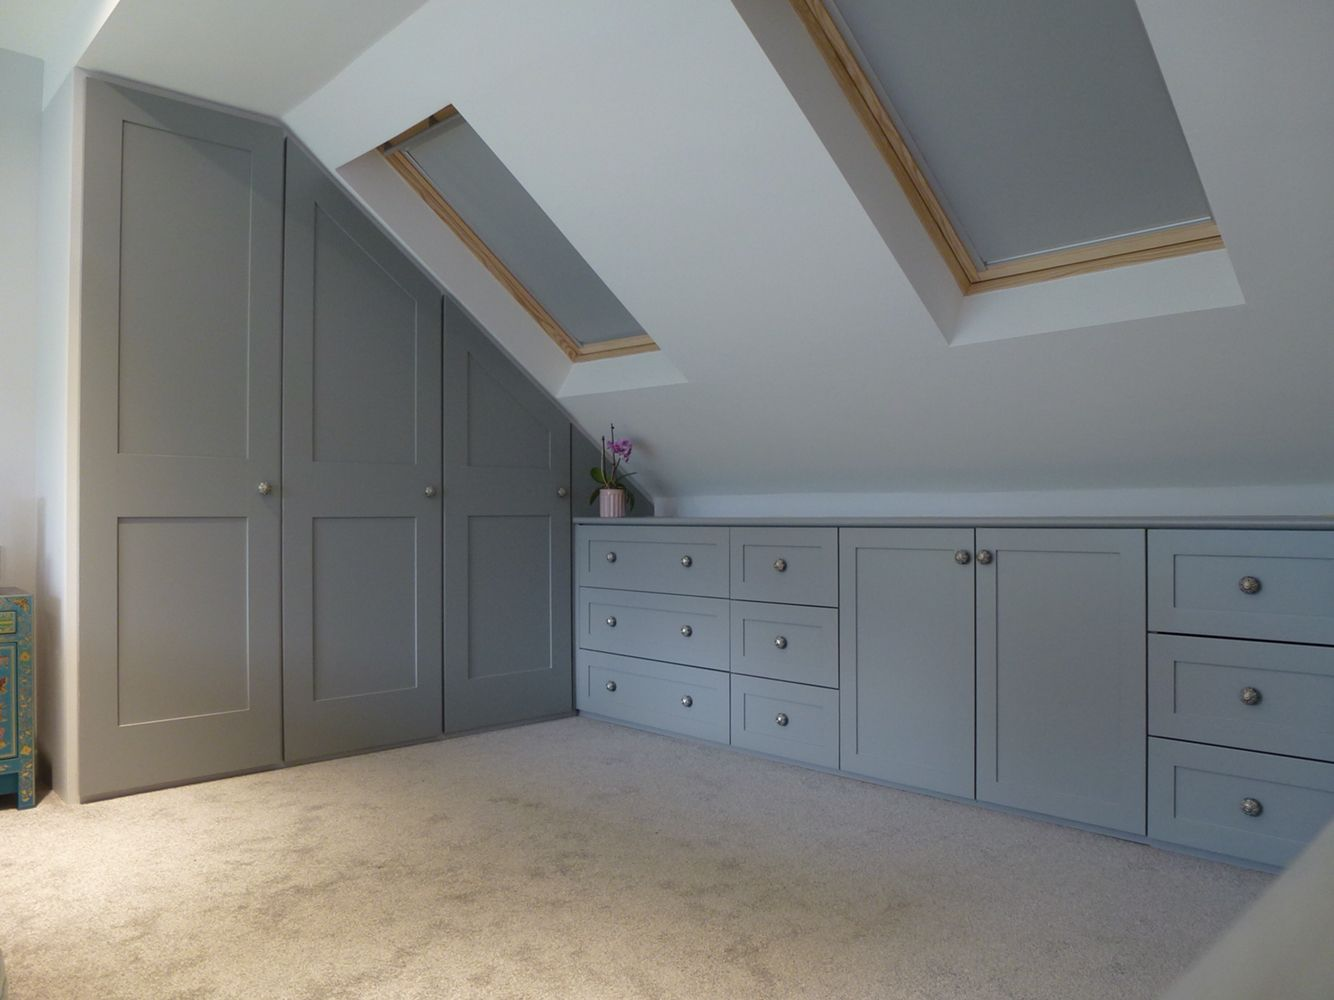 Loft Storage Fitted Wardrobes Built Into Loft Conversion Storage Drawer Units